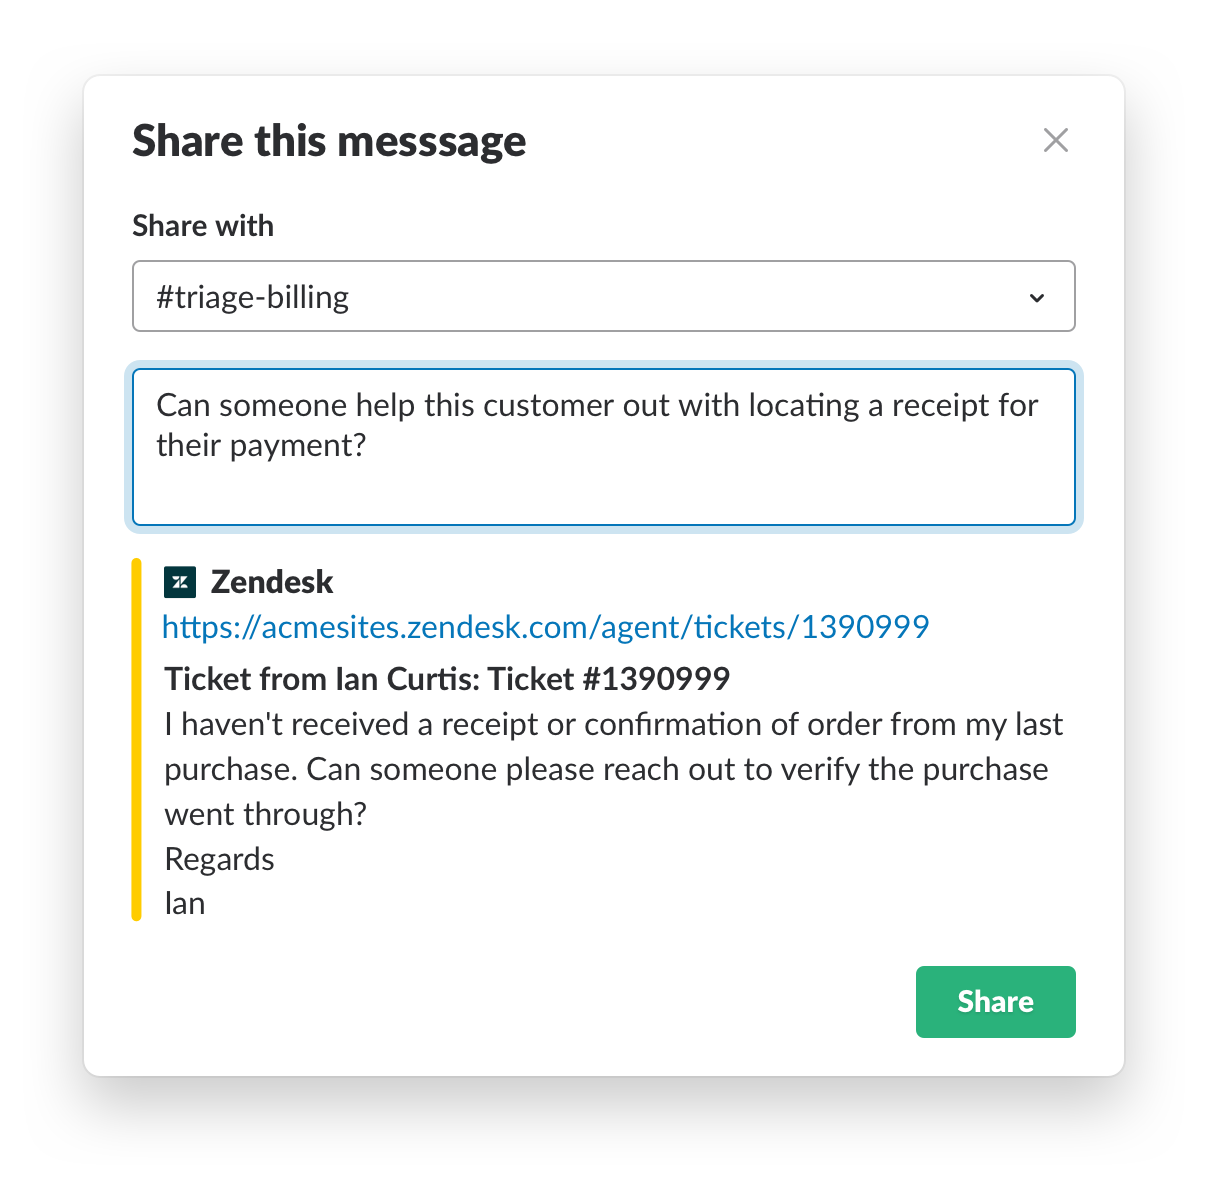 share Zendesk message with subject matter experts